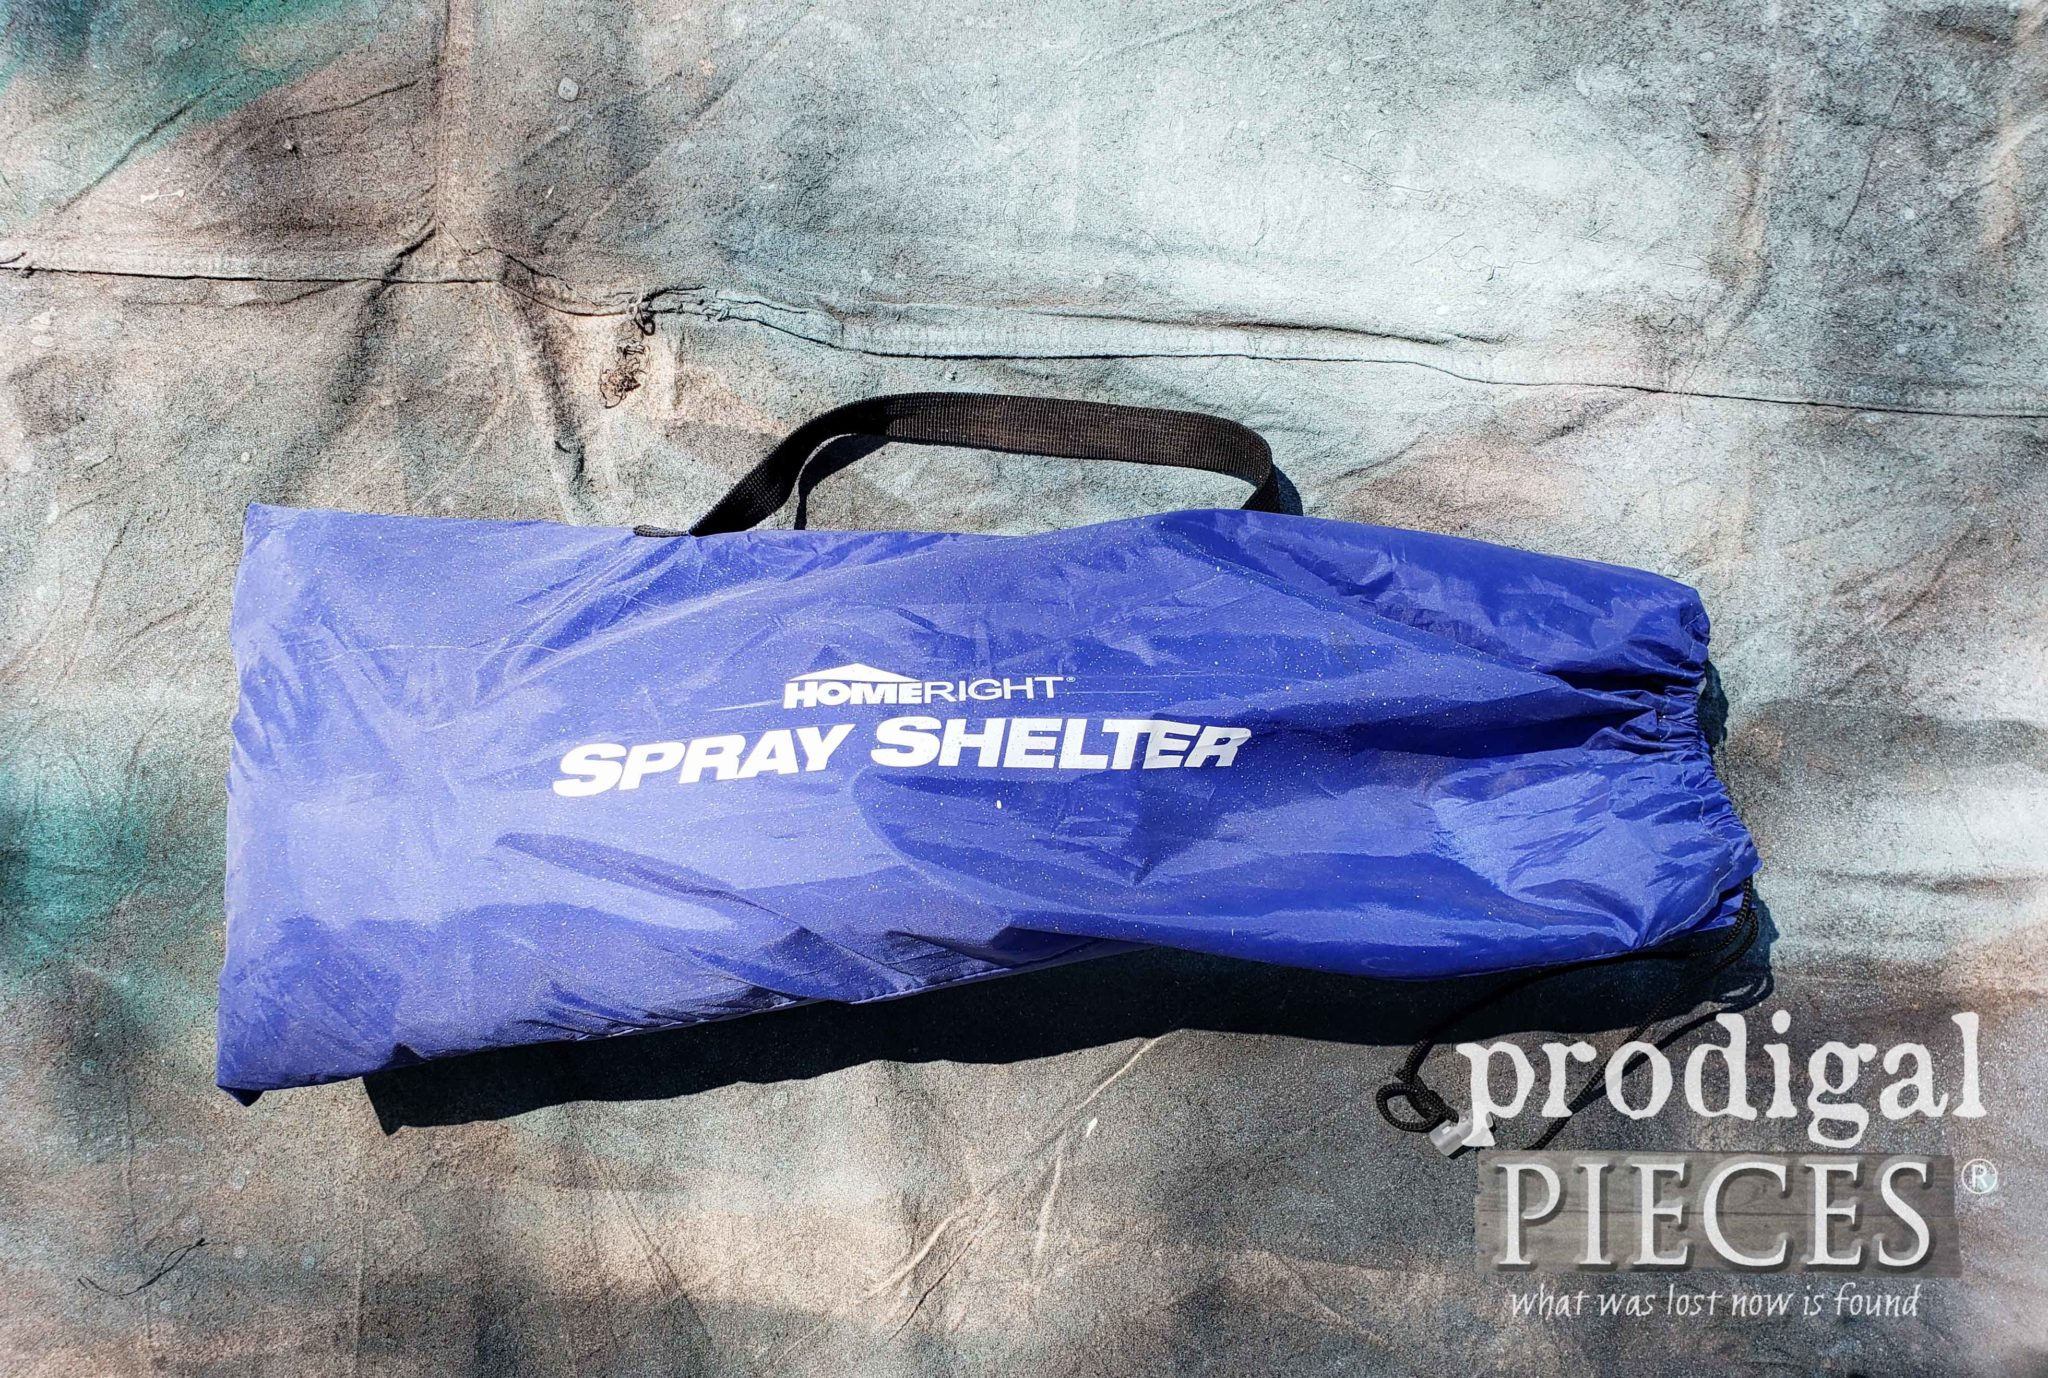 Bagged HomeRight Large Spray Shelter for DIY fun | prodigalpieces.com